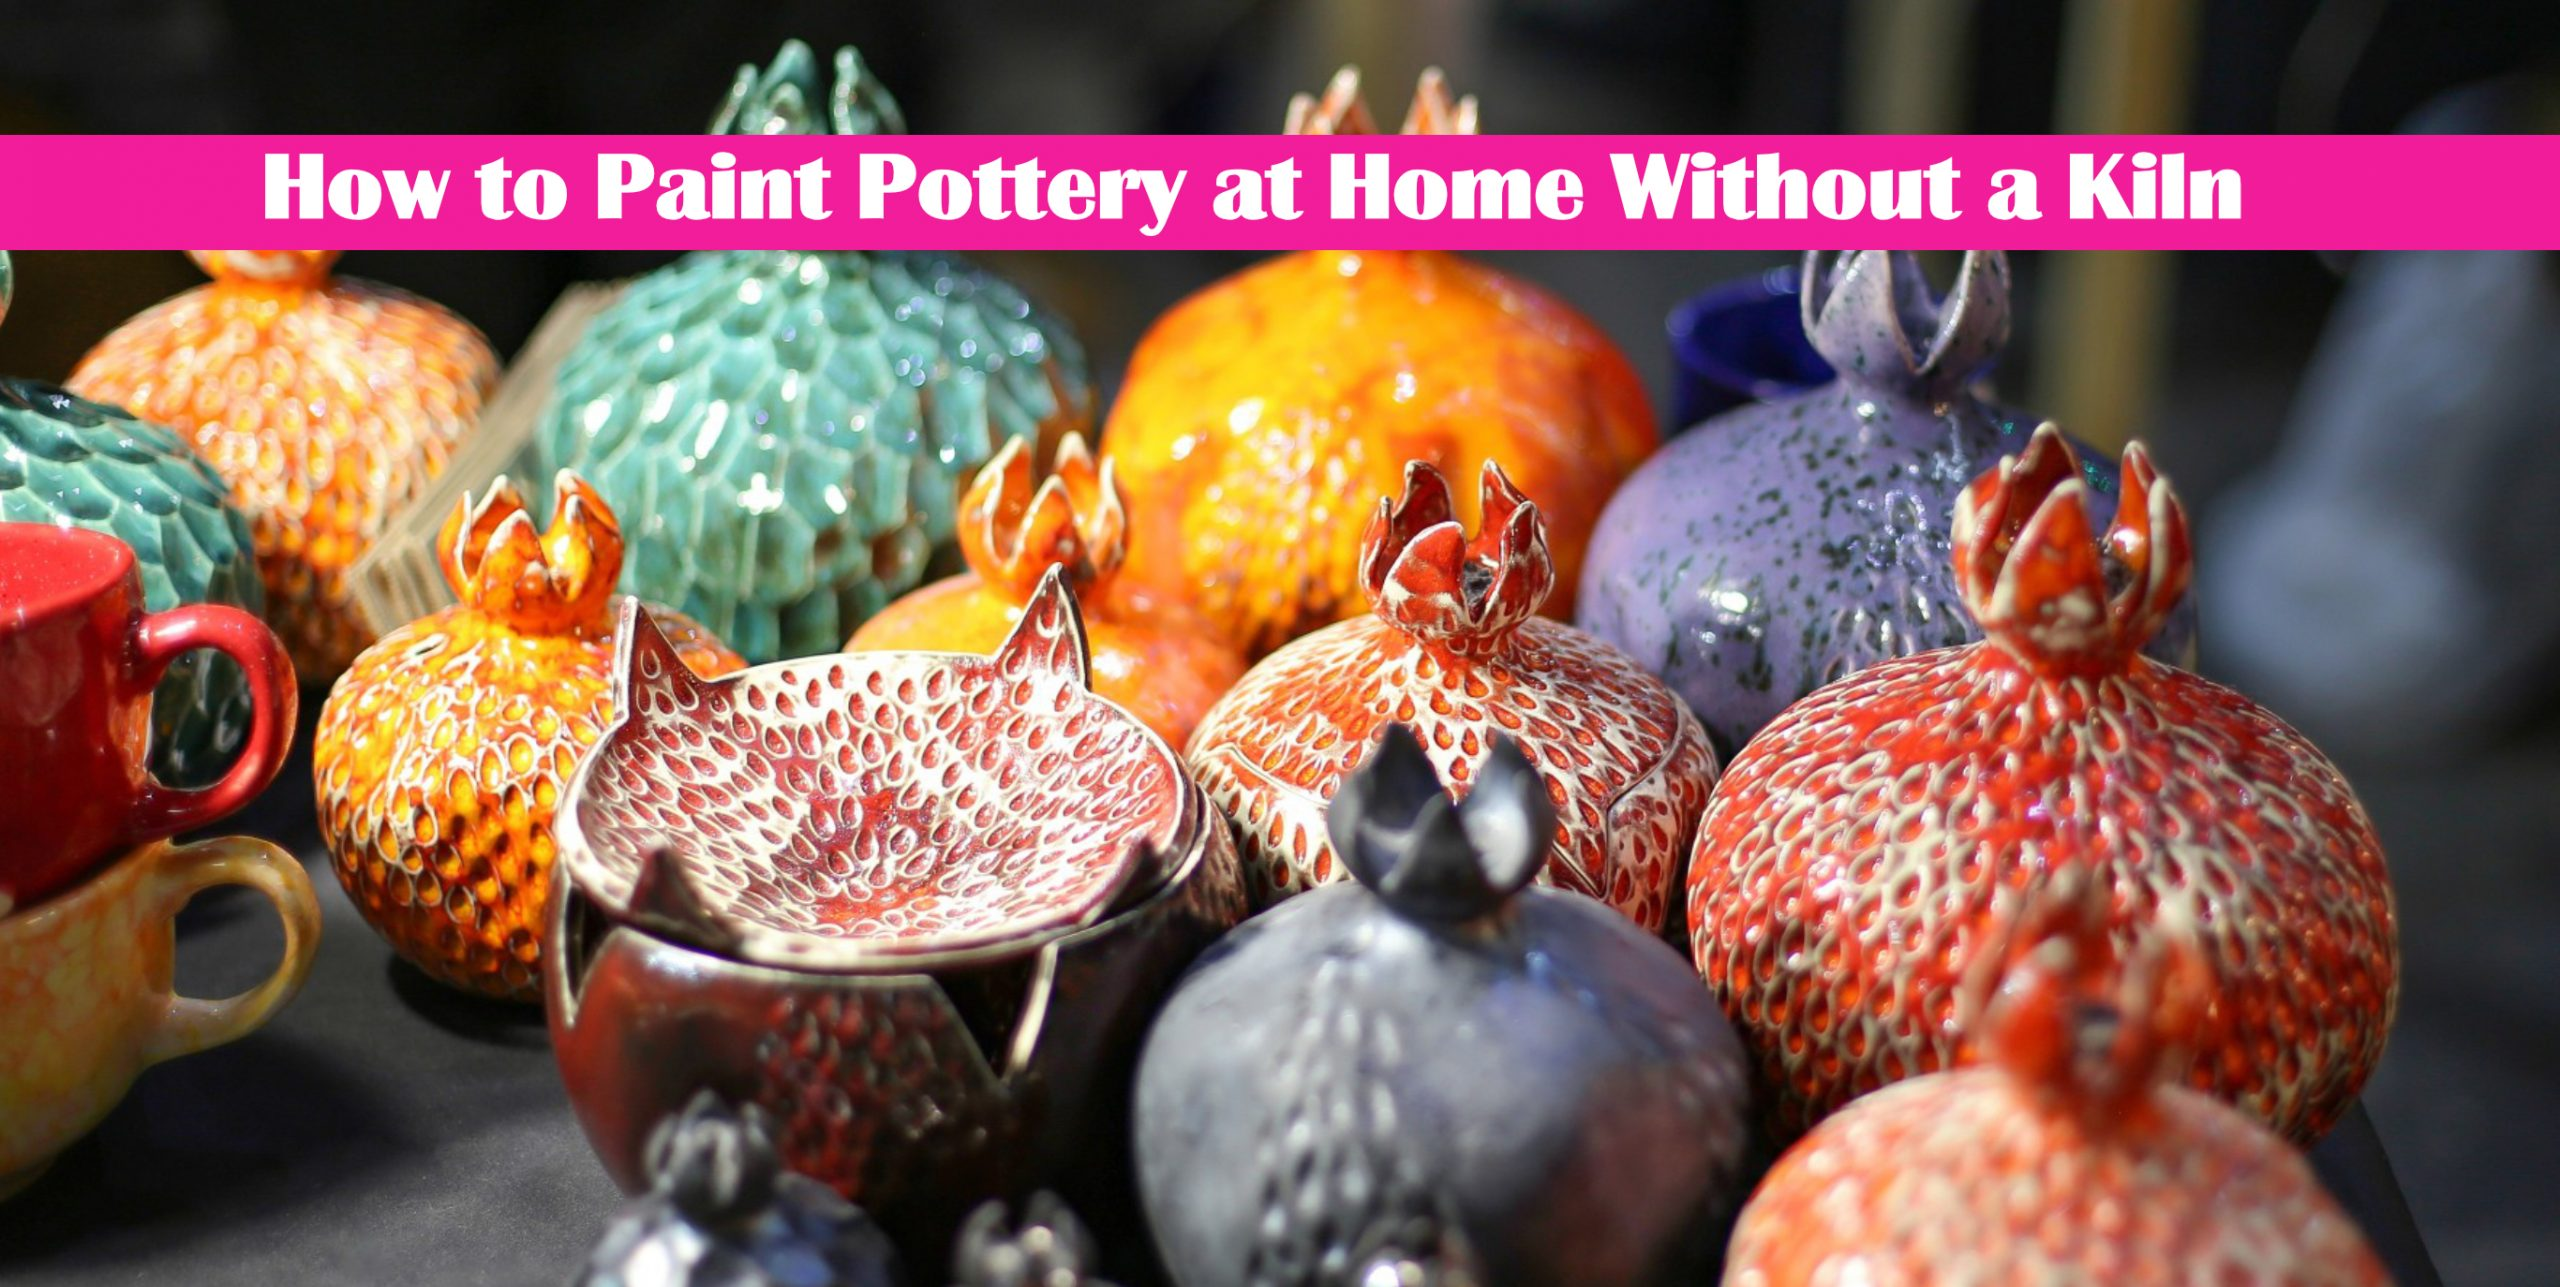 How to Paint Pottery at Home Without a Kiln